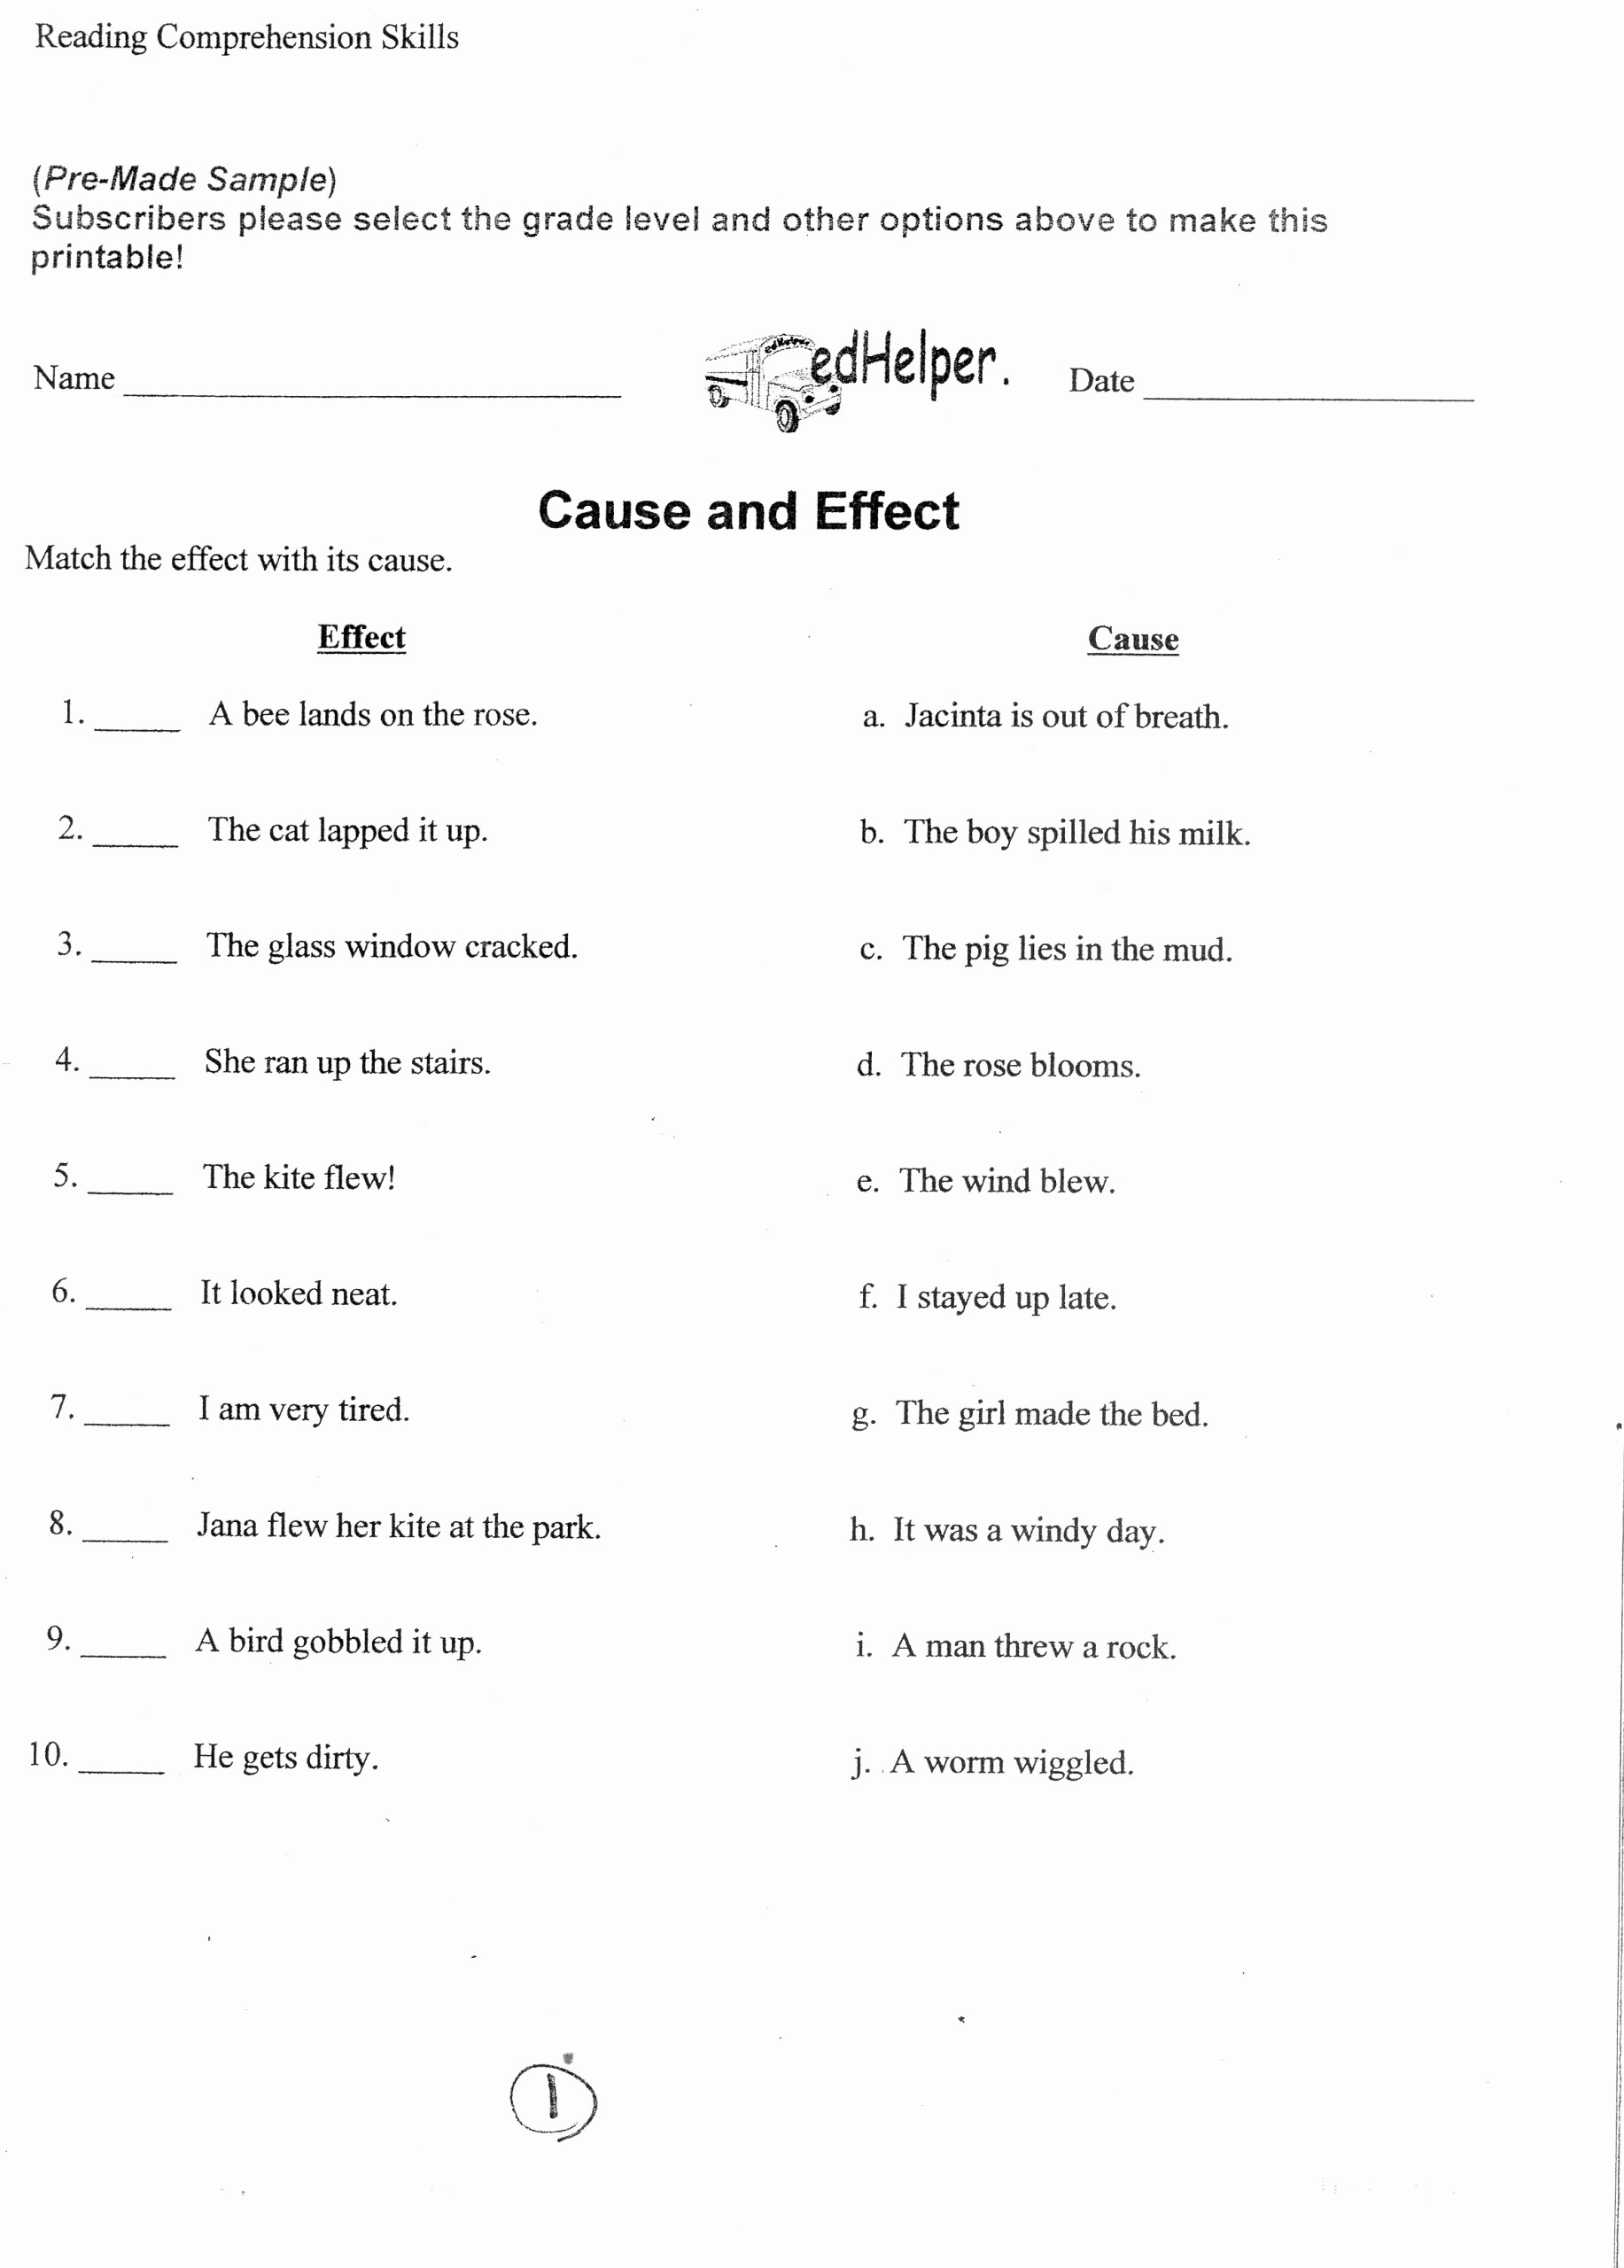 Summary Worksheets Middle School Awesome 20 Summary Worksheets Middle School